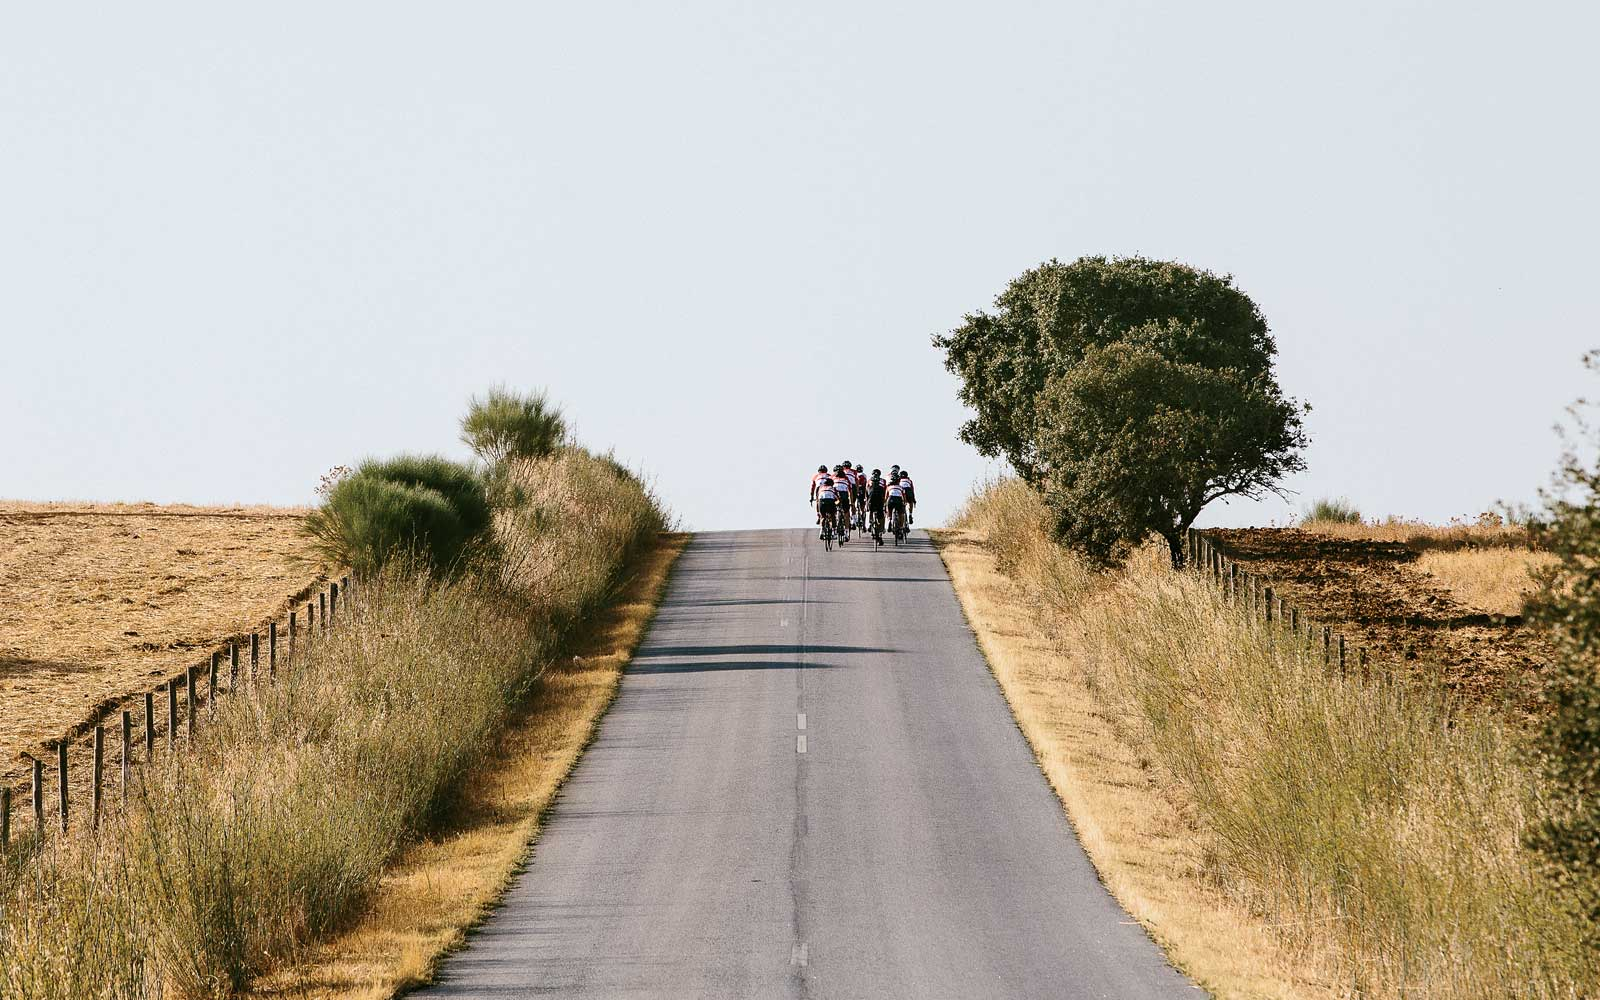 Touring Portugal's Alentejo Region by Bicycle